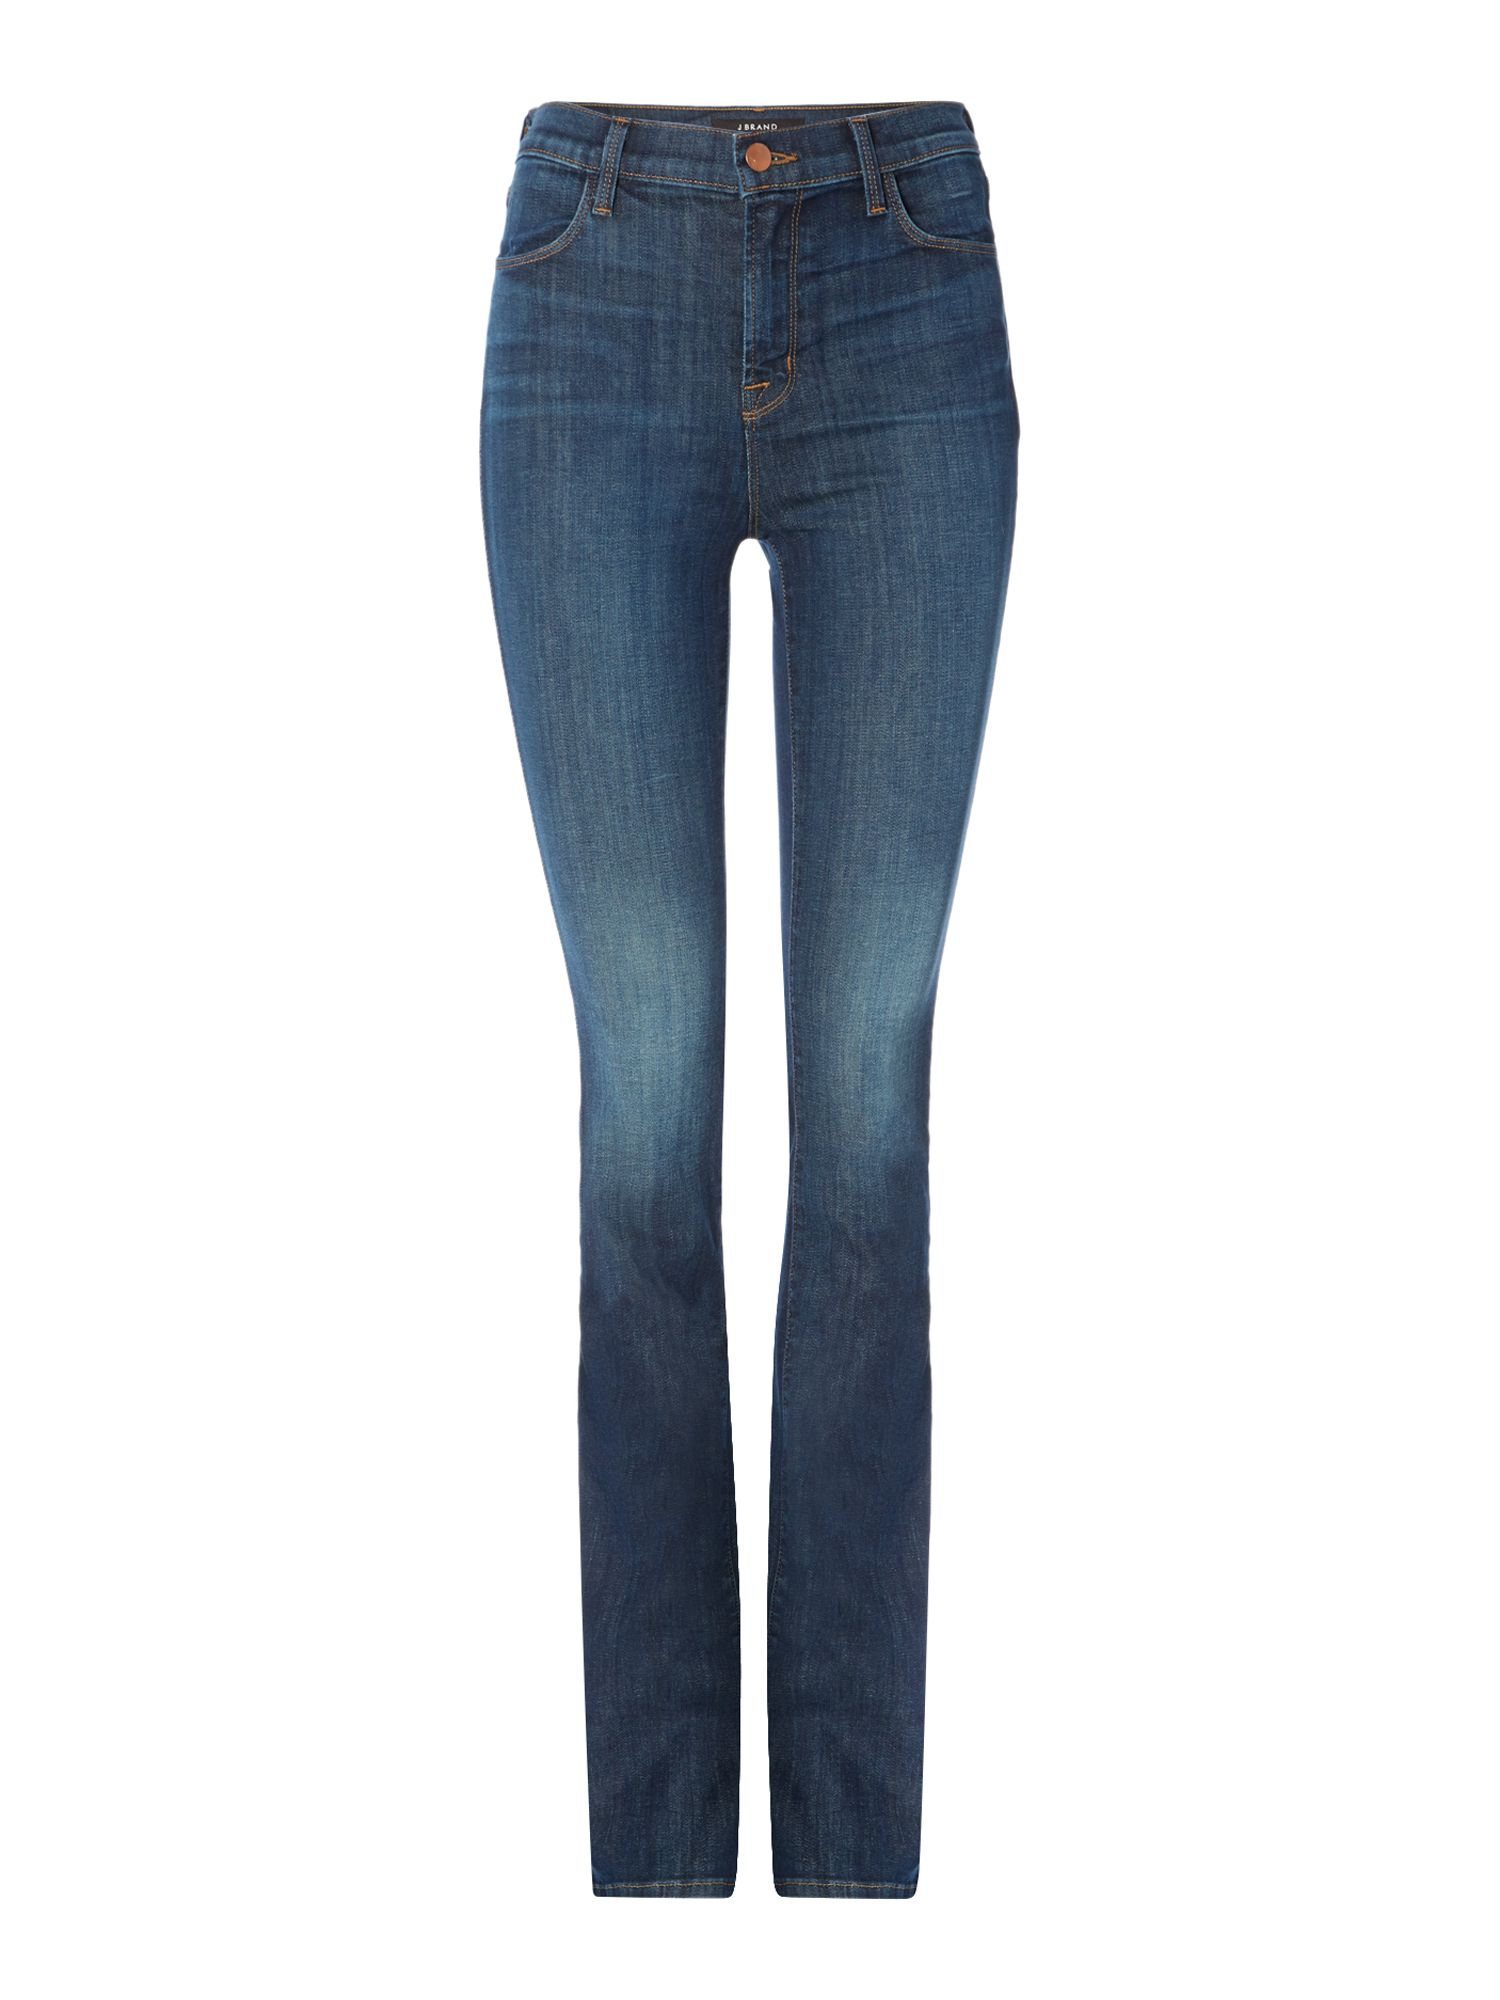 J brand Remy High Rise Boot Cut Jeans In Storm in Blue | Lyst